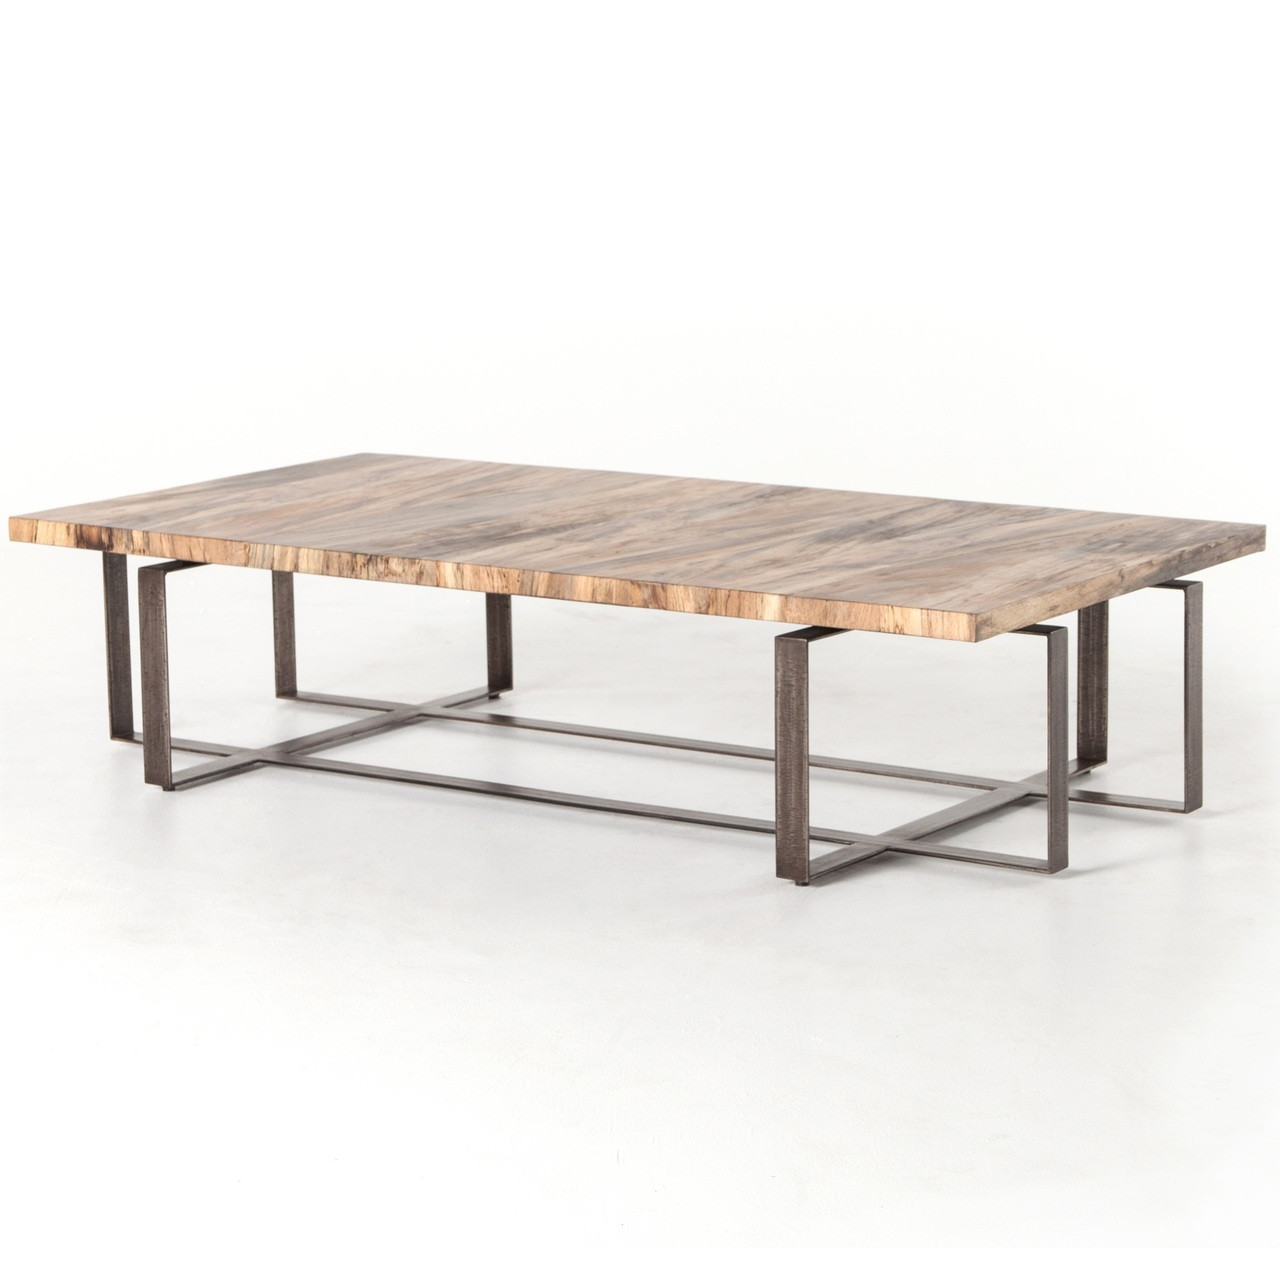 Rustic reclaimed wood coffee tables modern wood coffee table brant spalted wood and iron leg large coffee table 65 geotapseo Images